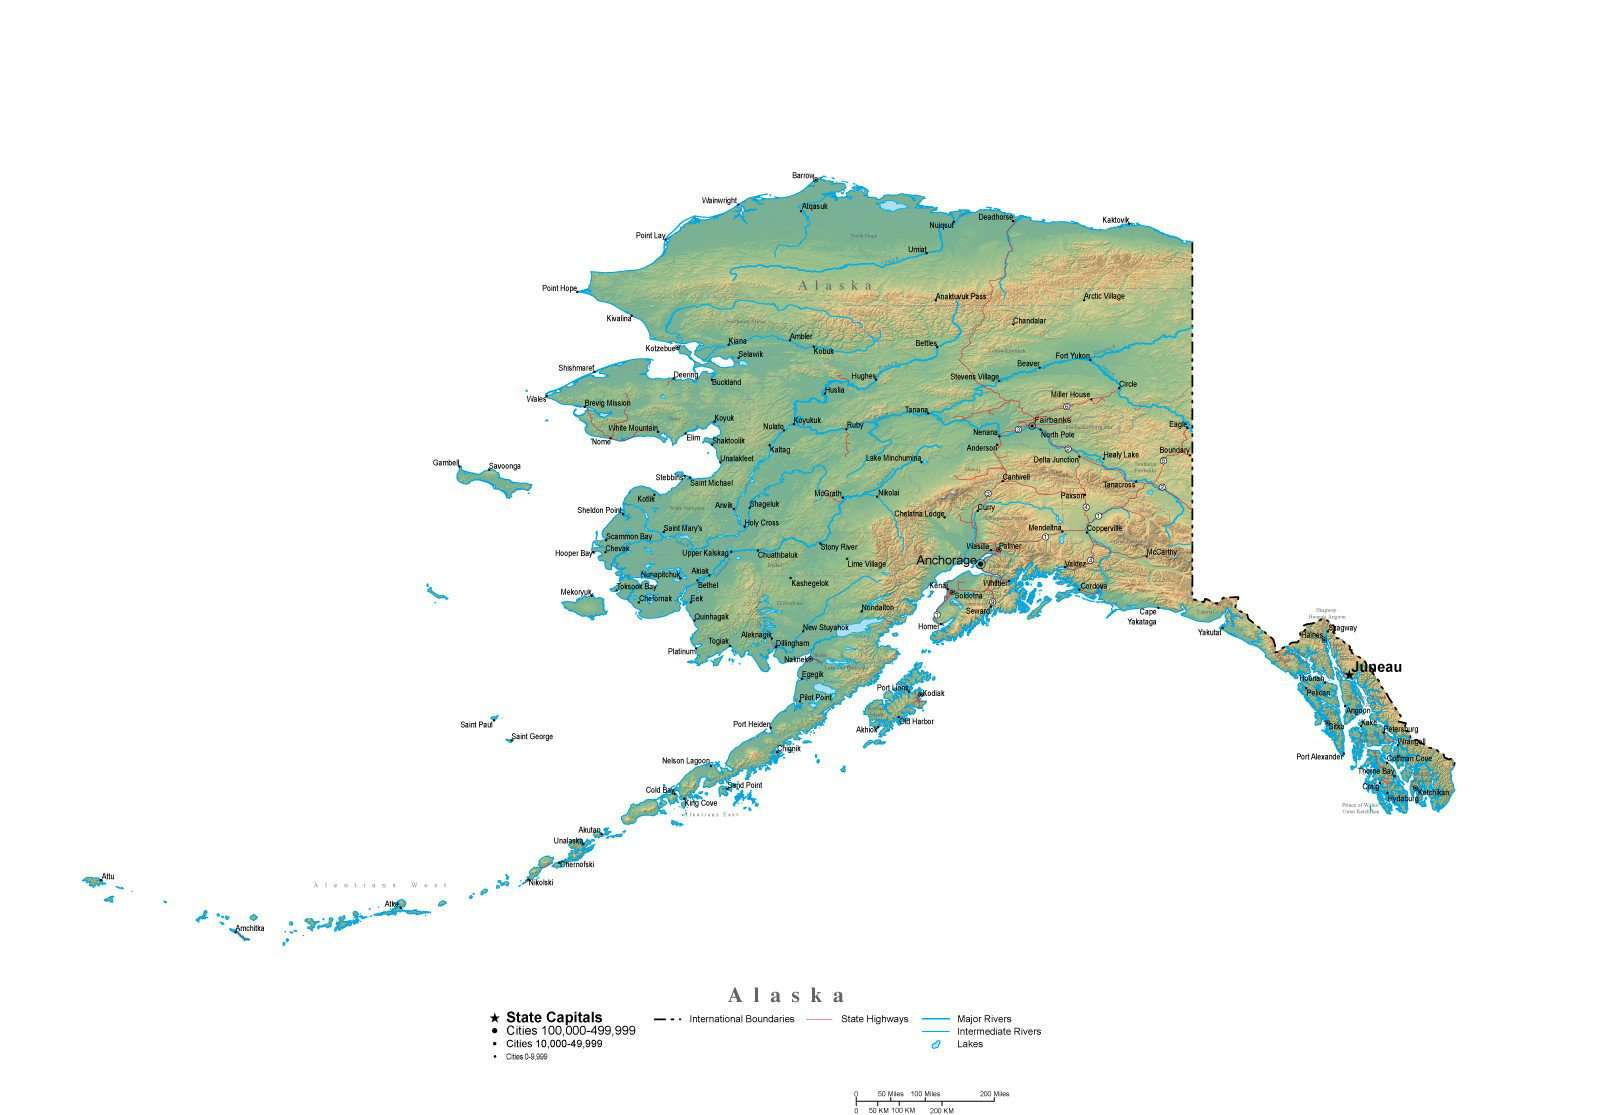 Alaska Map - Cut-Out Style with Cities, Roads, Water Features and Terrain on map seattle cities, map canada cities, map colorado cities, map maryland cities, map georgia cities, map europe cities, map alabama cities, map pennsylvania cities, map arizona cities, map louisiana cities, map virginia cities, map wisconsin cities, map texas cities, map arkansas cities, map maine cities, map florida cities, map greenland cities, map ohio cities, map atlanta cities, map michigan cities,